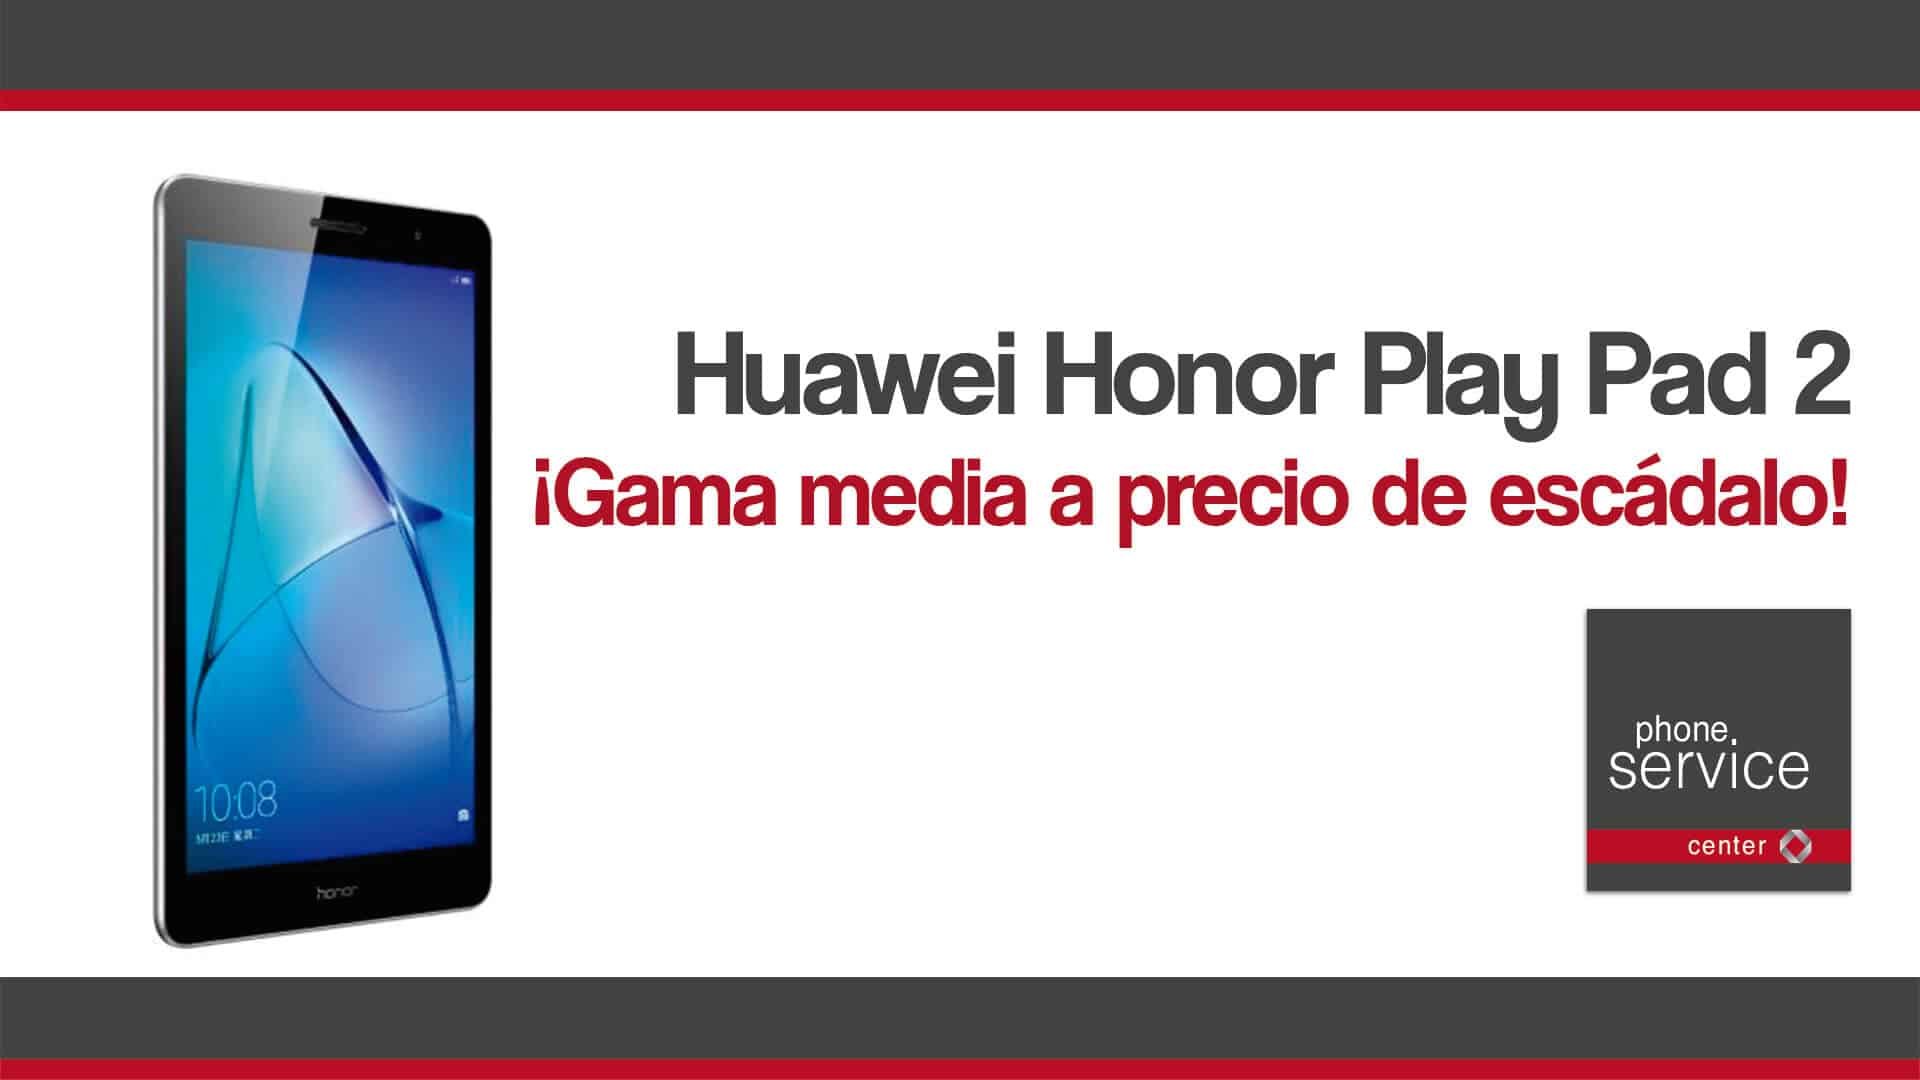 Huawei Honor Play Pad 2